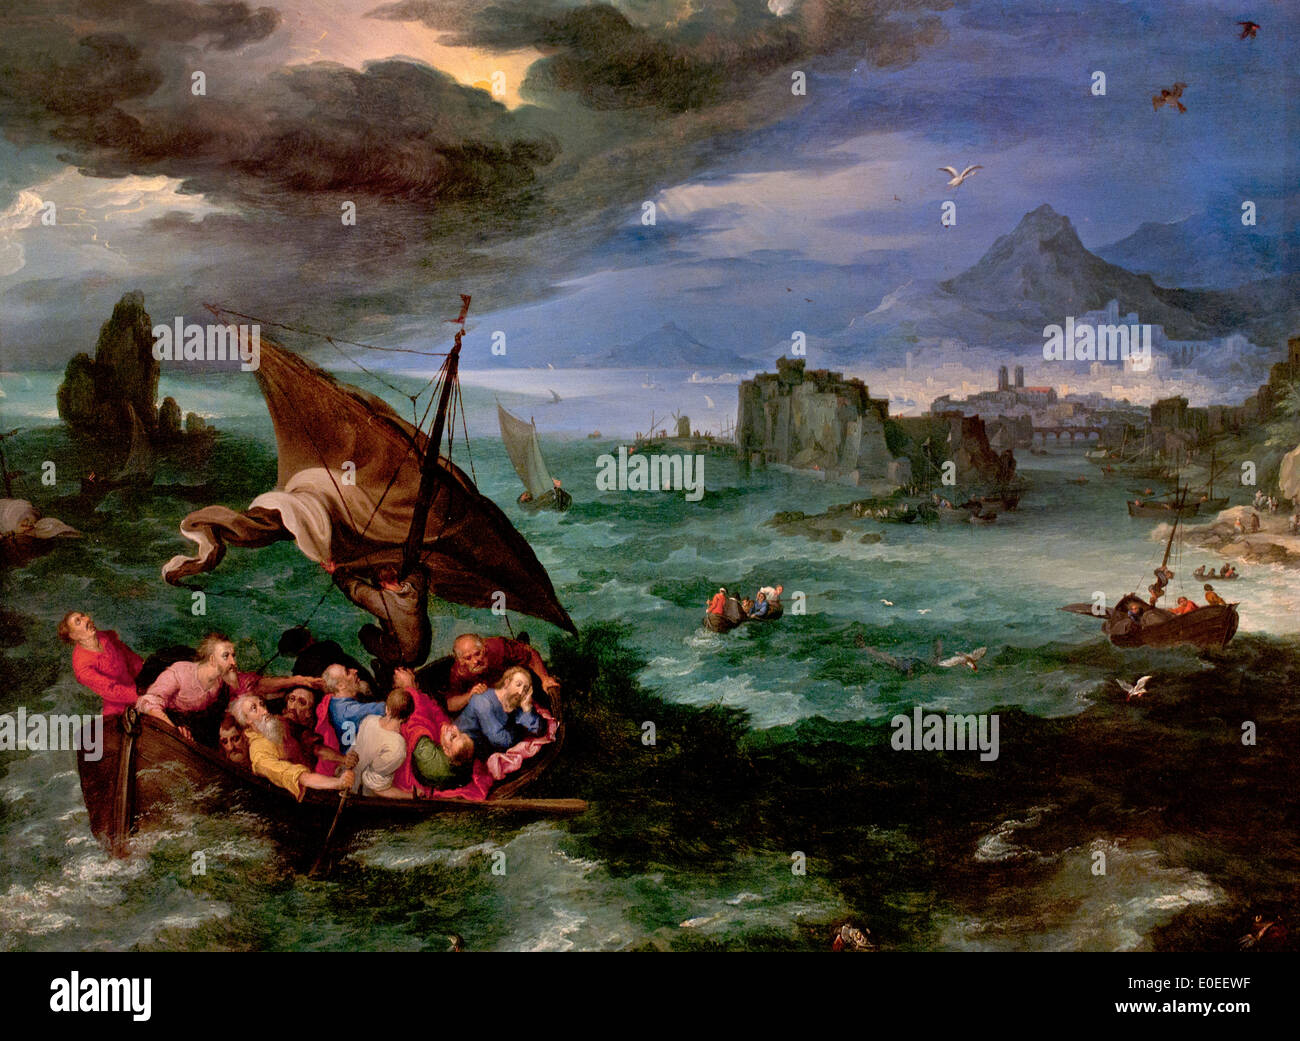 Storm on the sea of galilee stock photos storm on the sea of christ in the storm on the sea of galilee jan brueghel the elder 1568 publicscrutiny